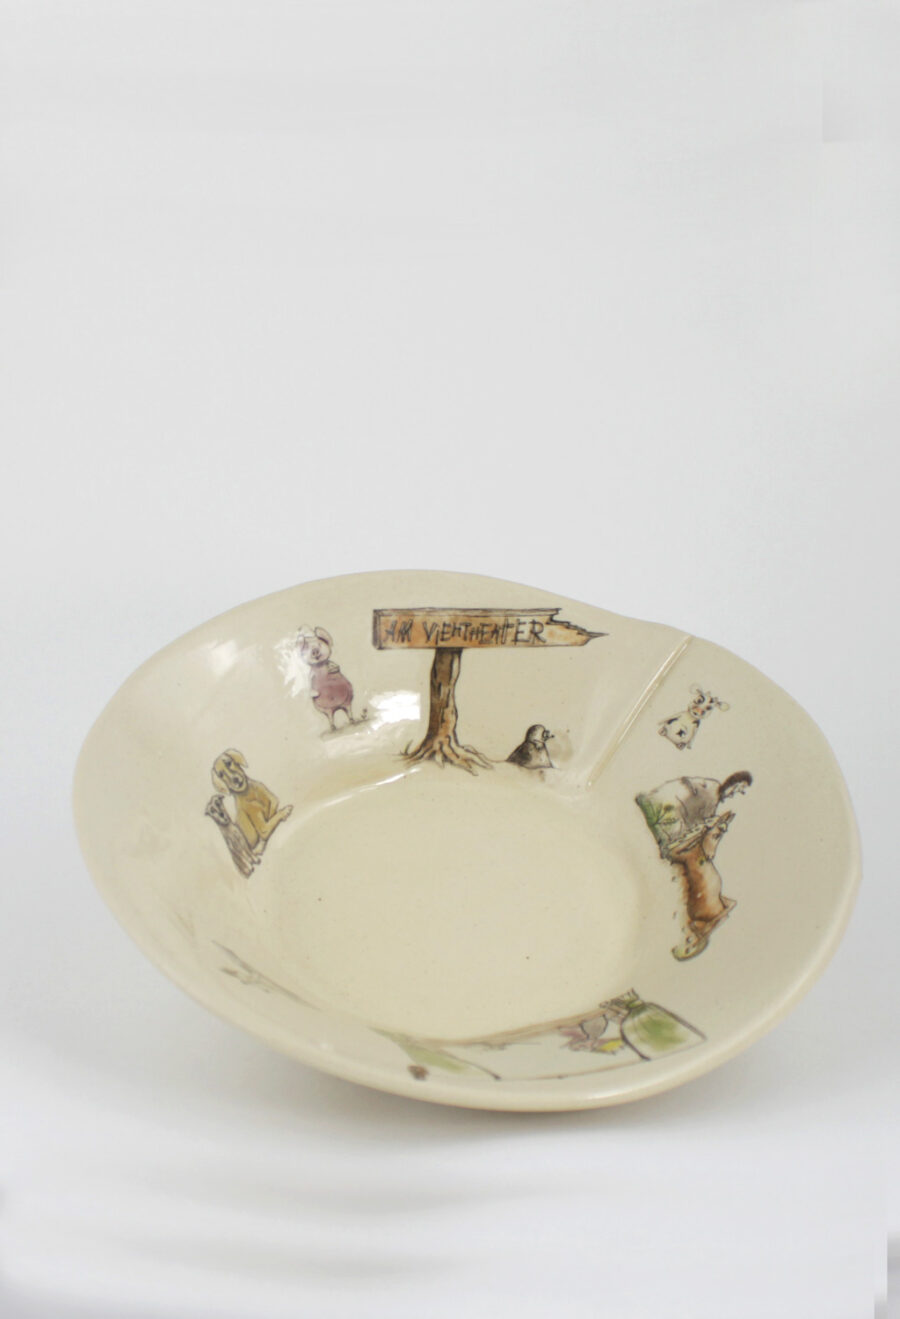 schale-pferd-am-viehtheater-my-deer-illustrated-ceramics-2